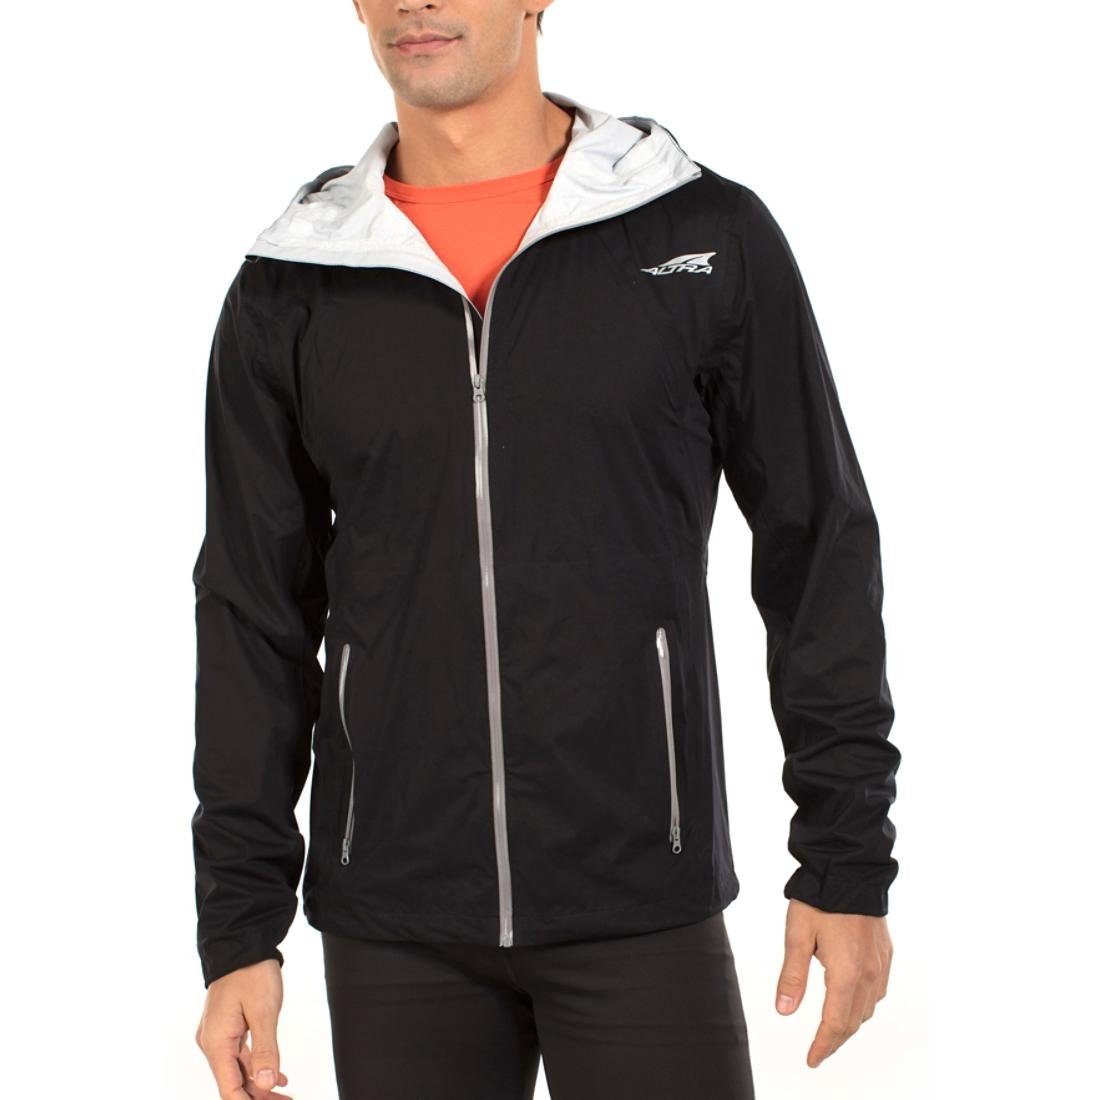 Altra AAM17F3A2 Men's Wasatch Jacket, Black - Small